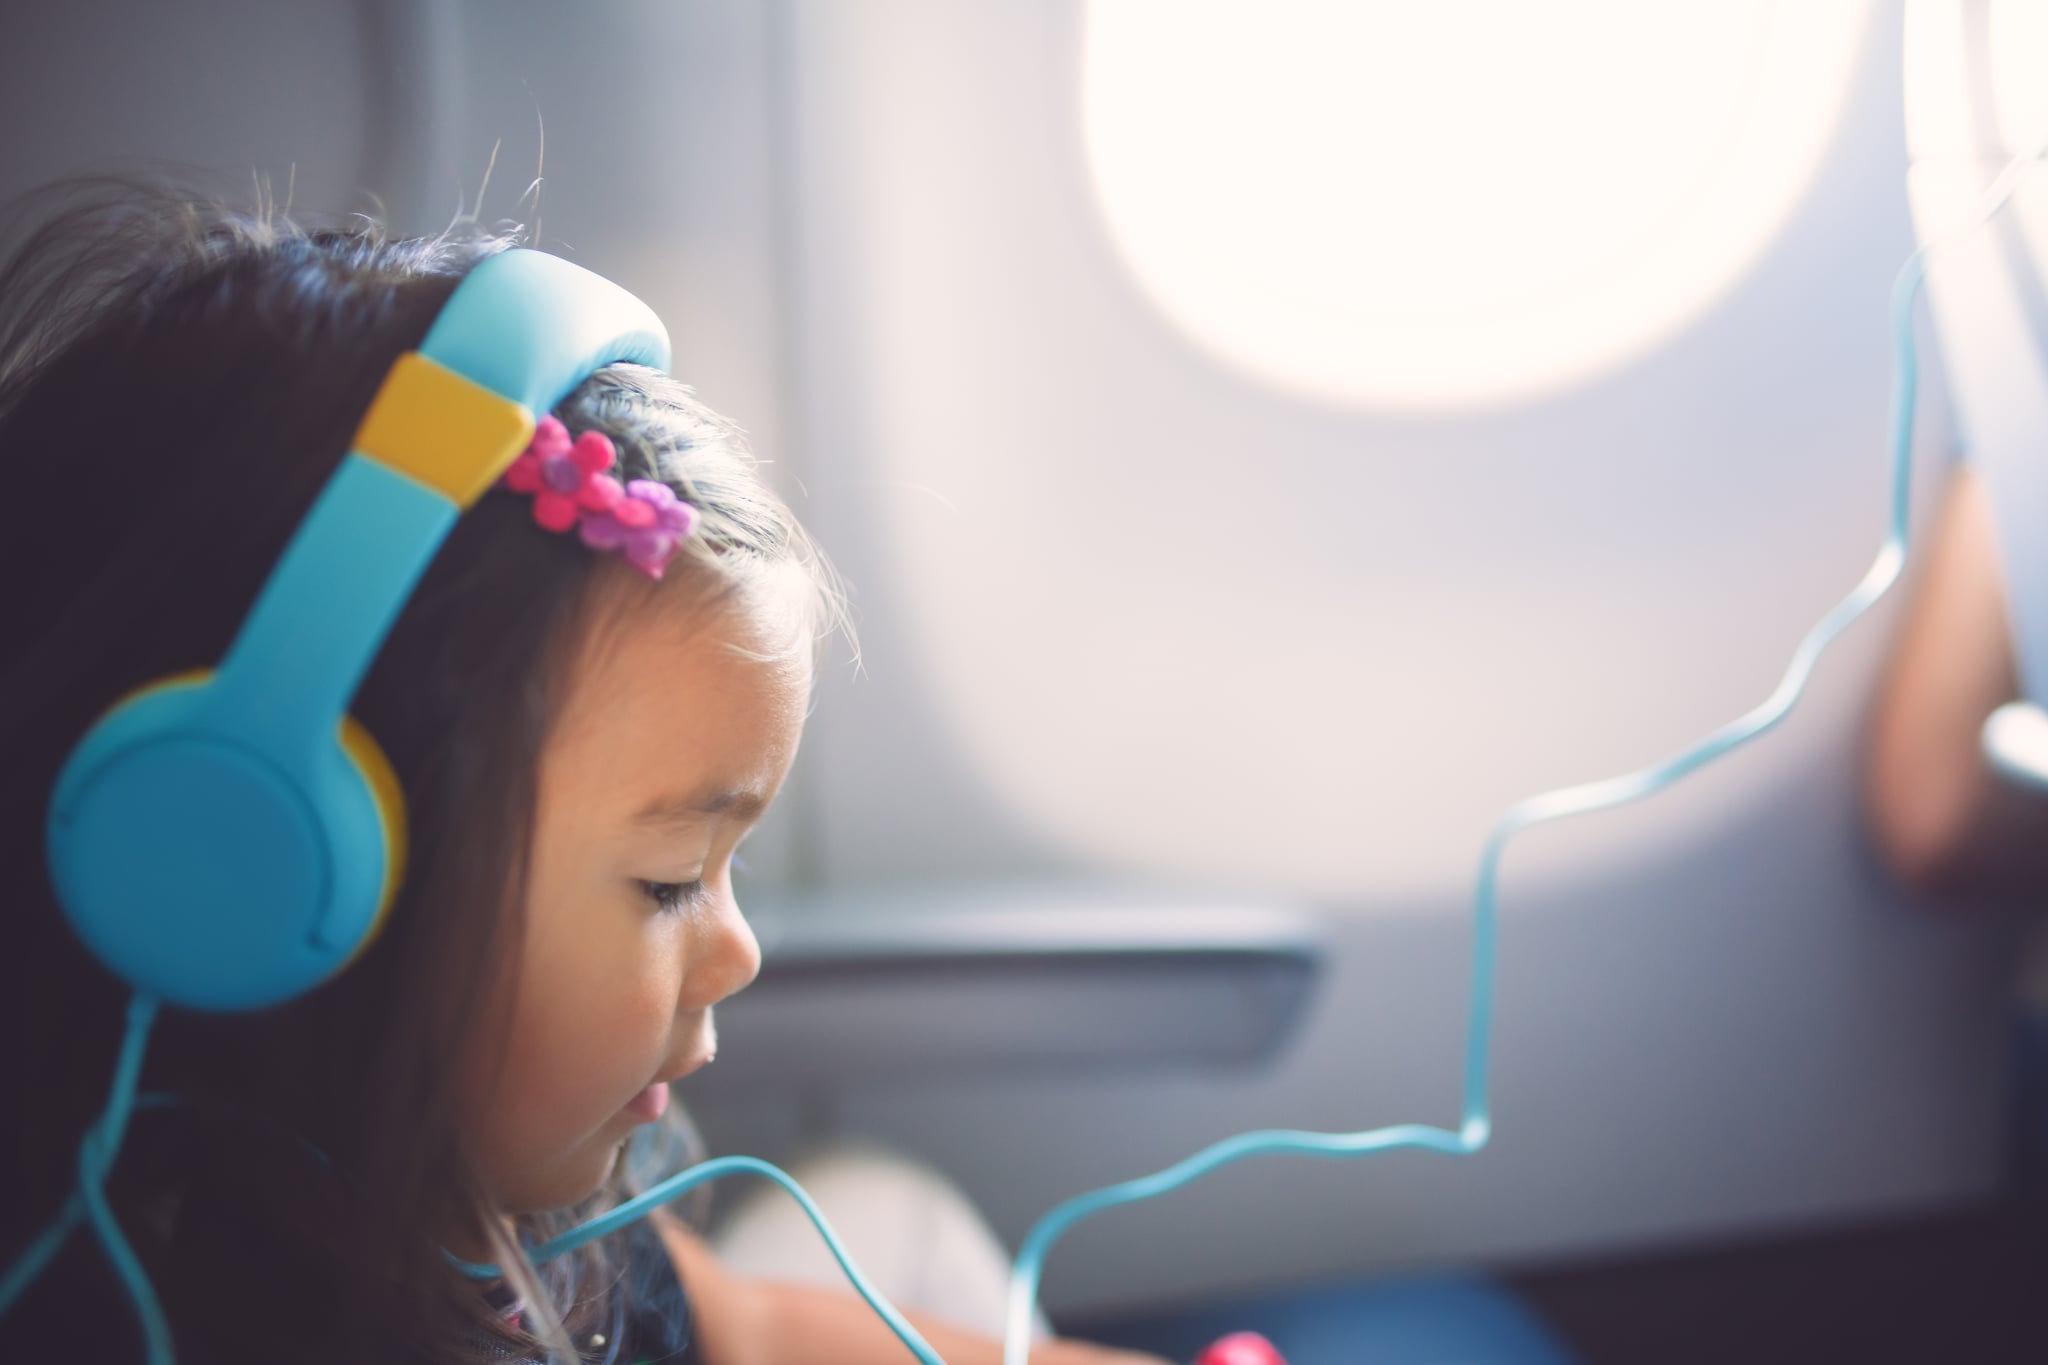 A cute 2 year old girl wearing head phones sits quietly in her seat listening to music and playing with something while flying.